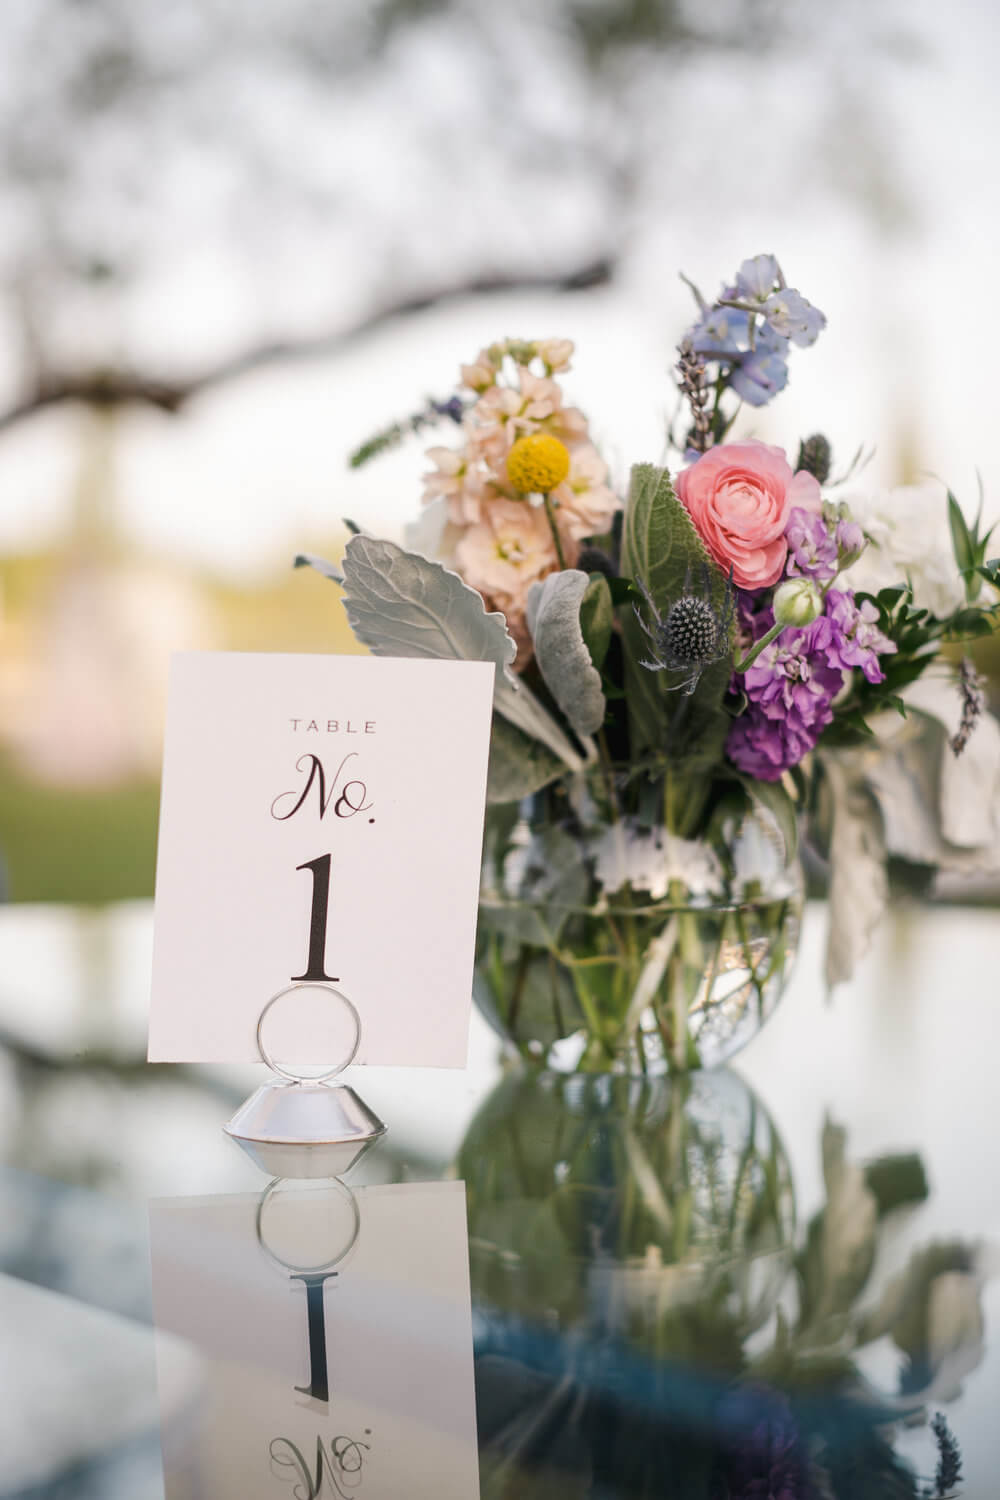 French country wedding inspiration glass table tops with table numbers and flowers.